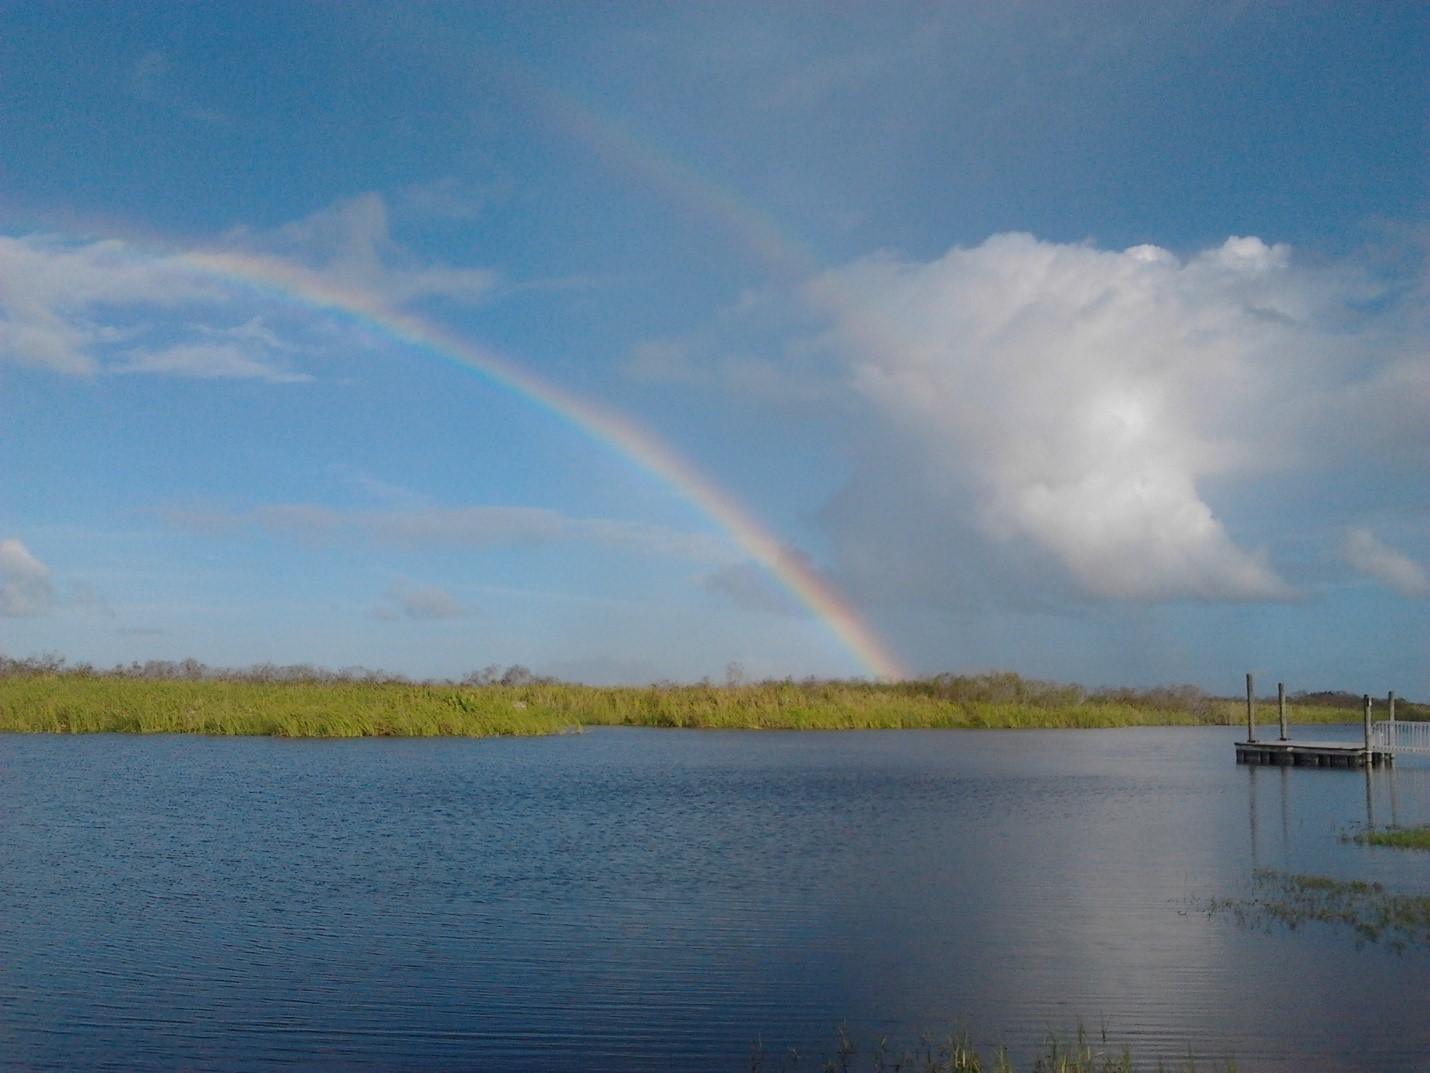 A rainbow appears over a northern Everglades study site, one of a number of sites from around the world sampled by Hodgkins and her team. Credit: Hodgkins